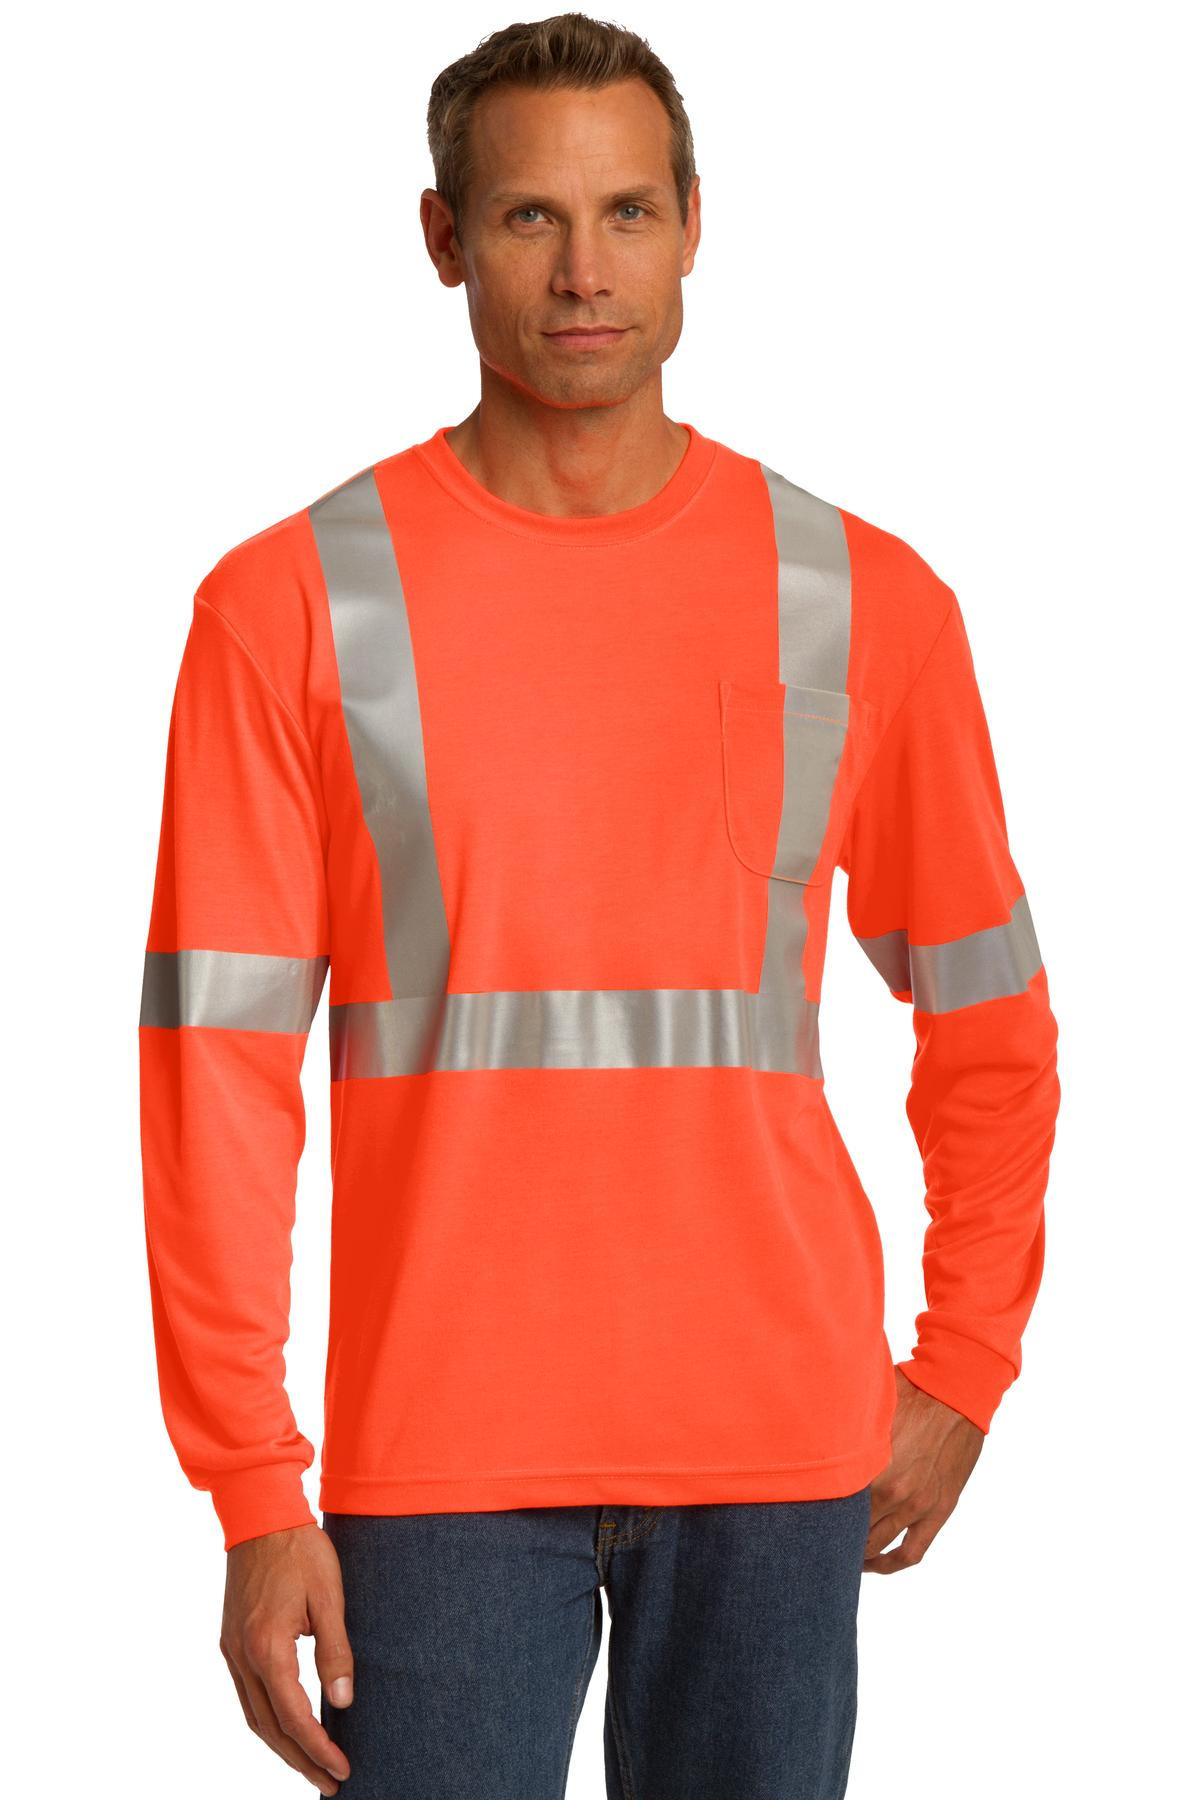 CornerStone ANSI 107 Class 2 Long Sleeve Safety T-Shirt. CS401LS